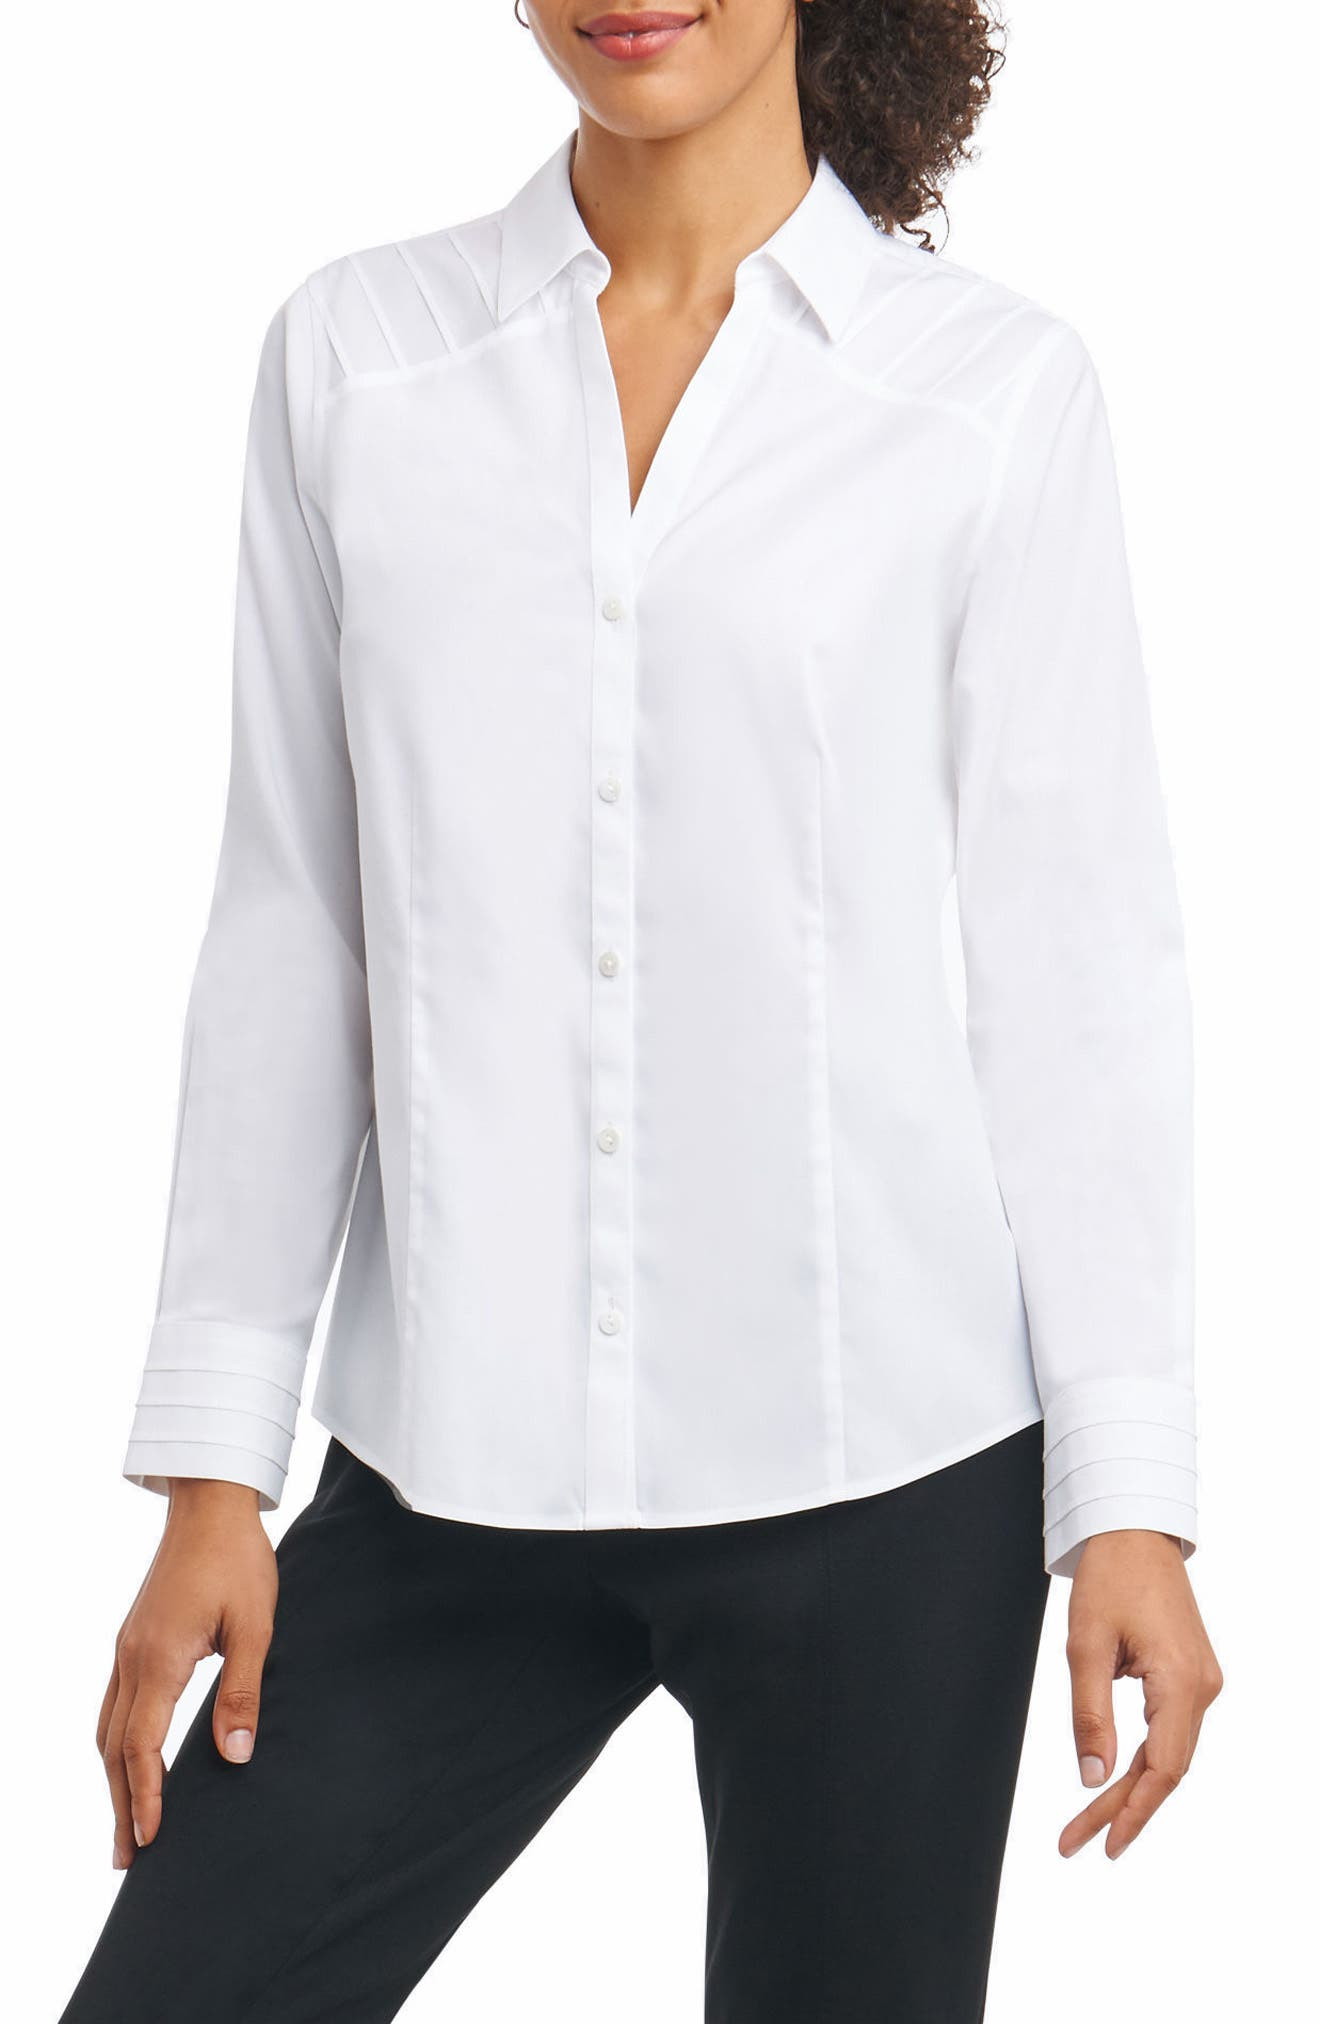 Foxcroft Rita in Solid Stretch Button Down Shirt